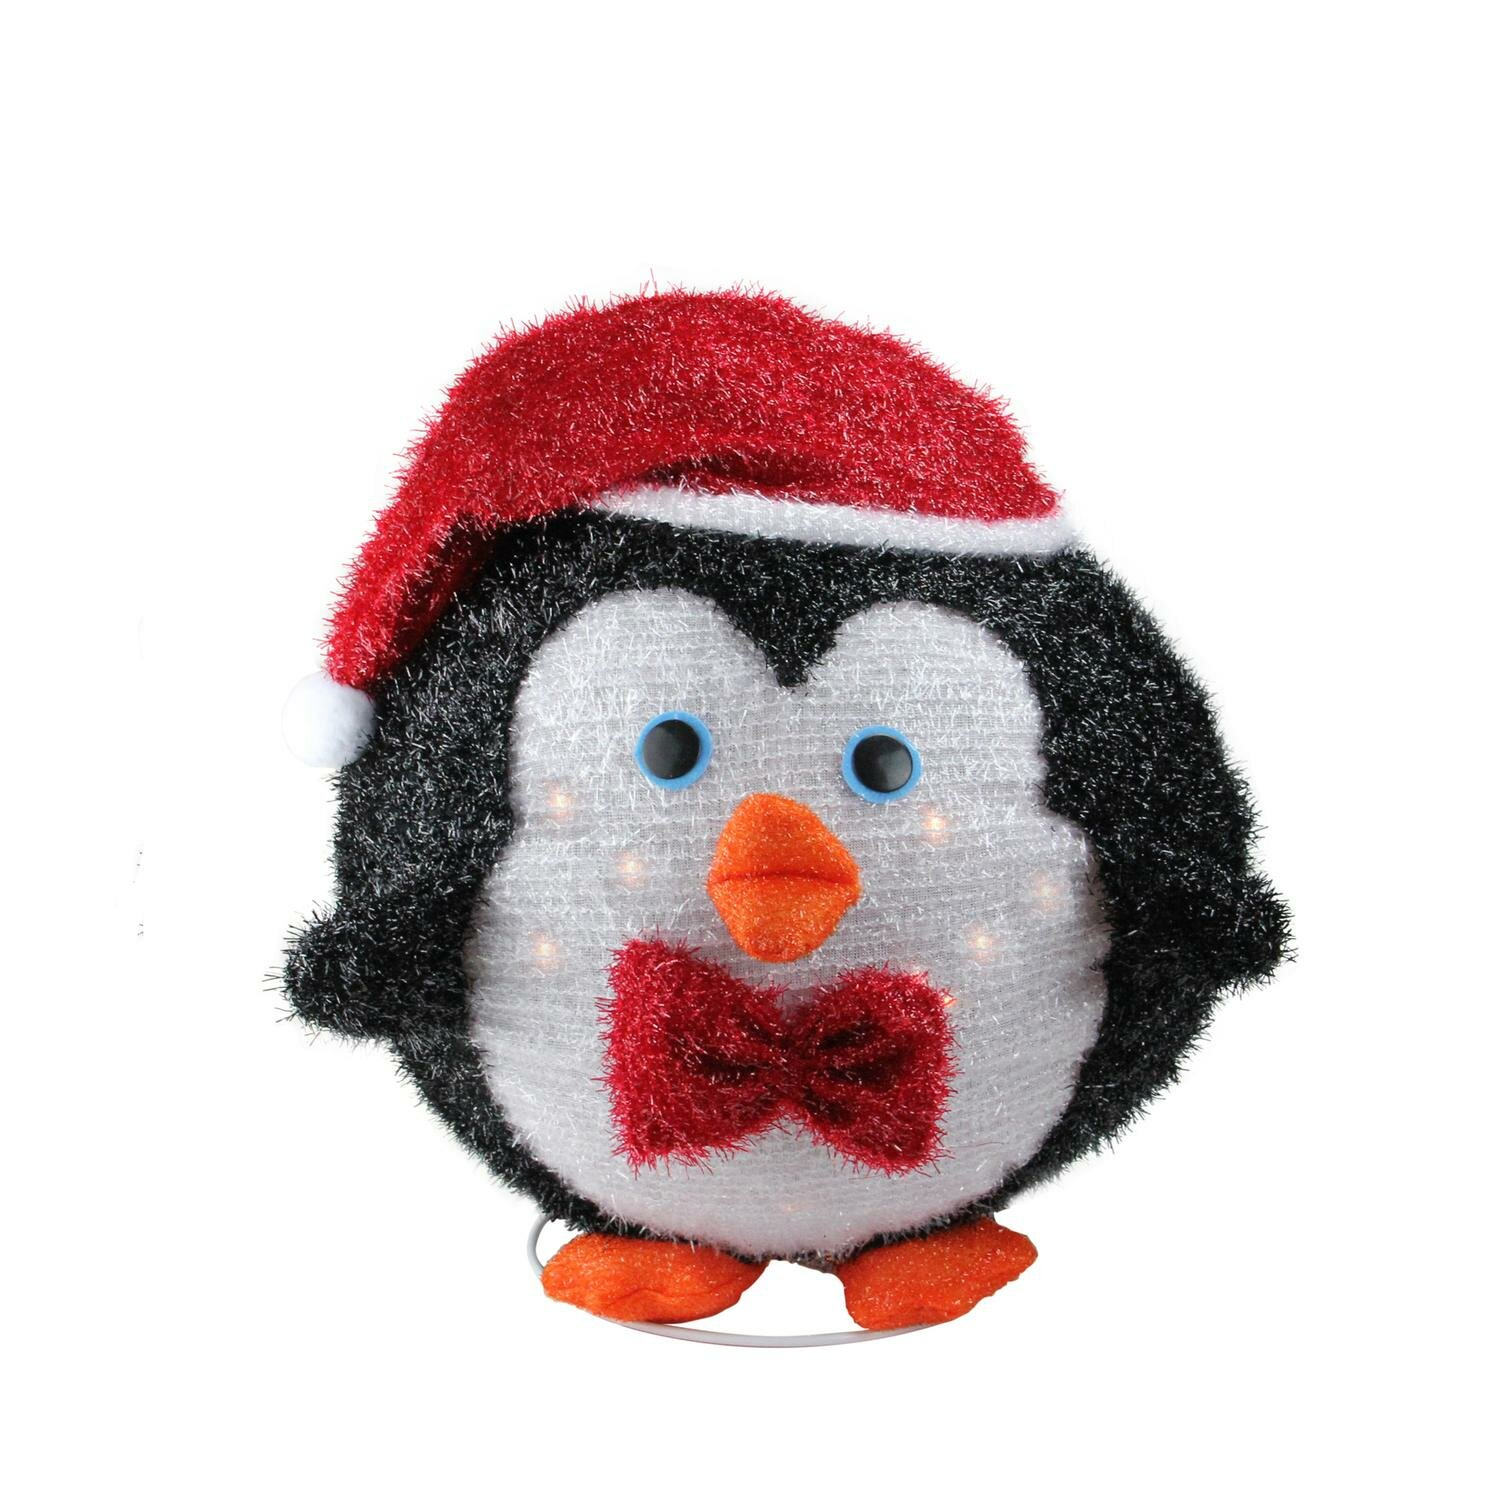 Collapsible Christmas Penguin Outdoor Decoration Lighted Display